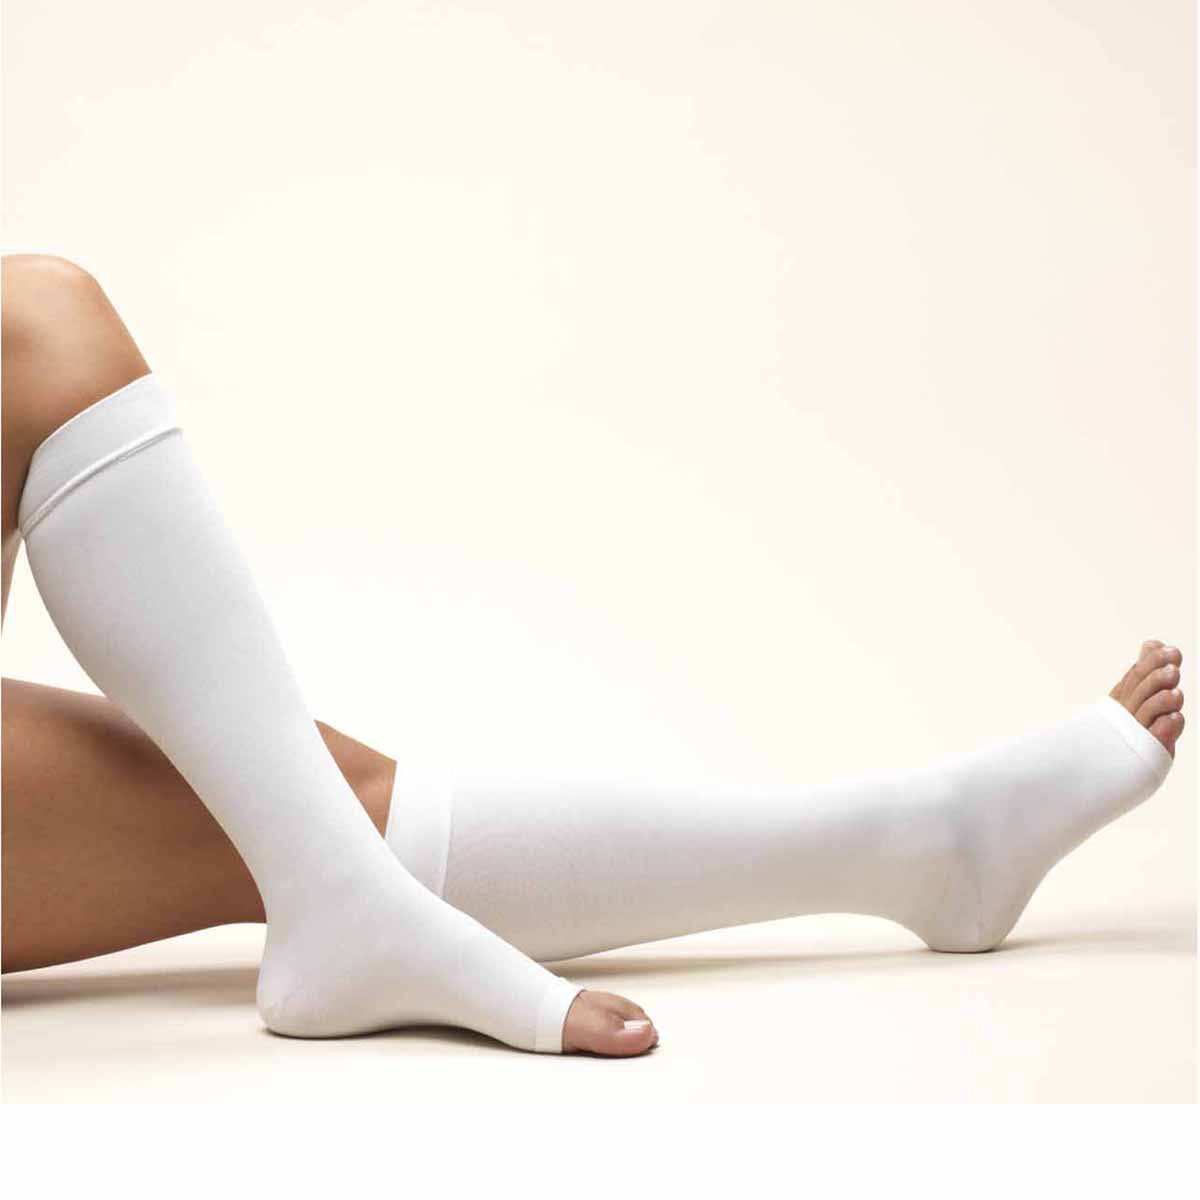 Truform 0808 (18 mmHg Knee High, Open Toe)